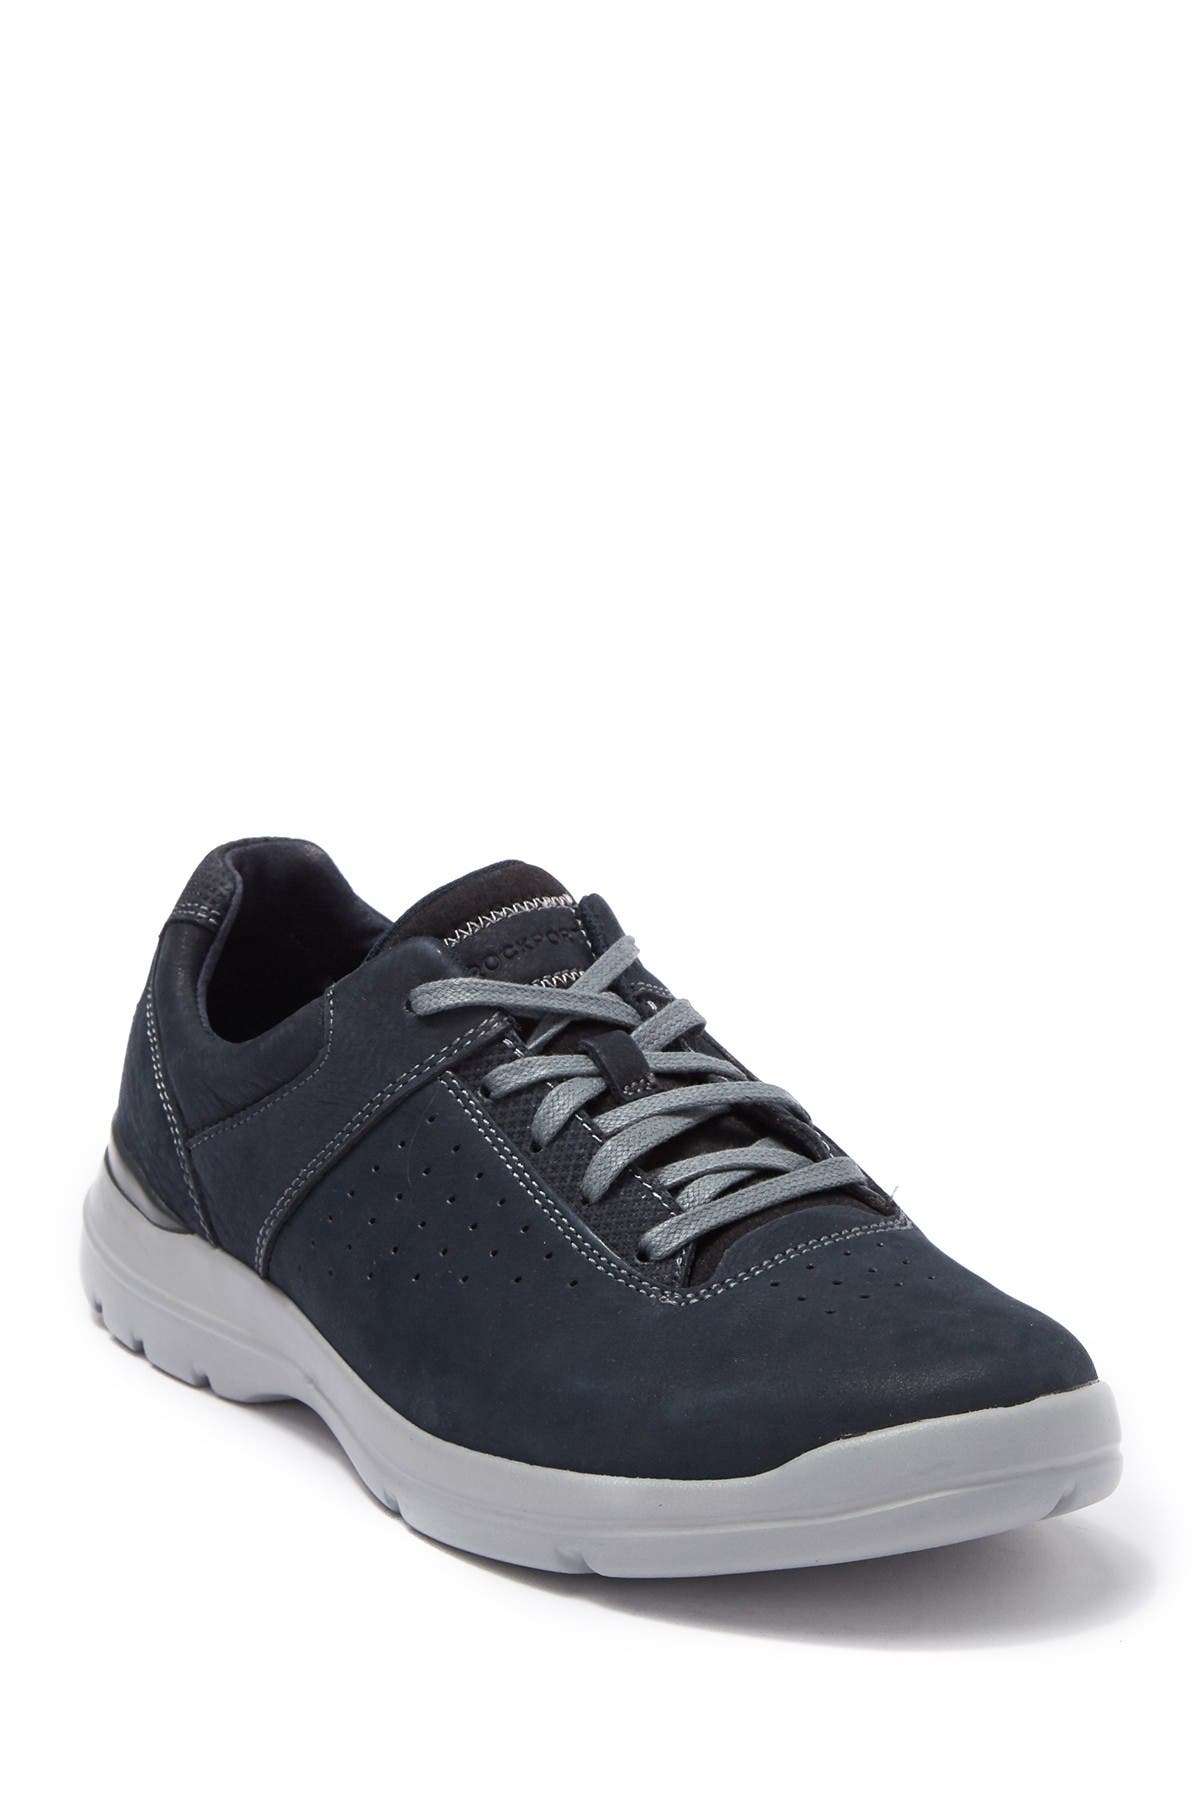 Image of Rockport City Edge Ubal Sneaker